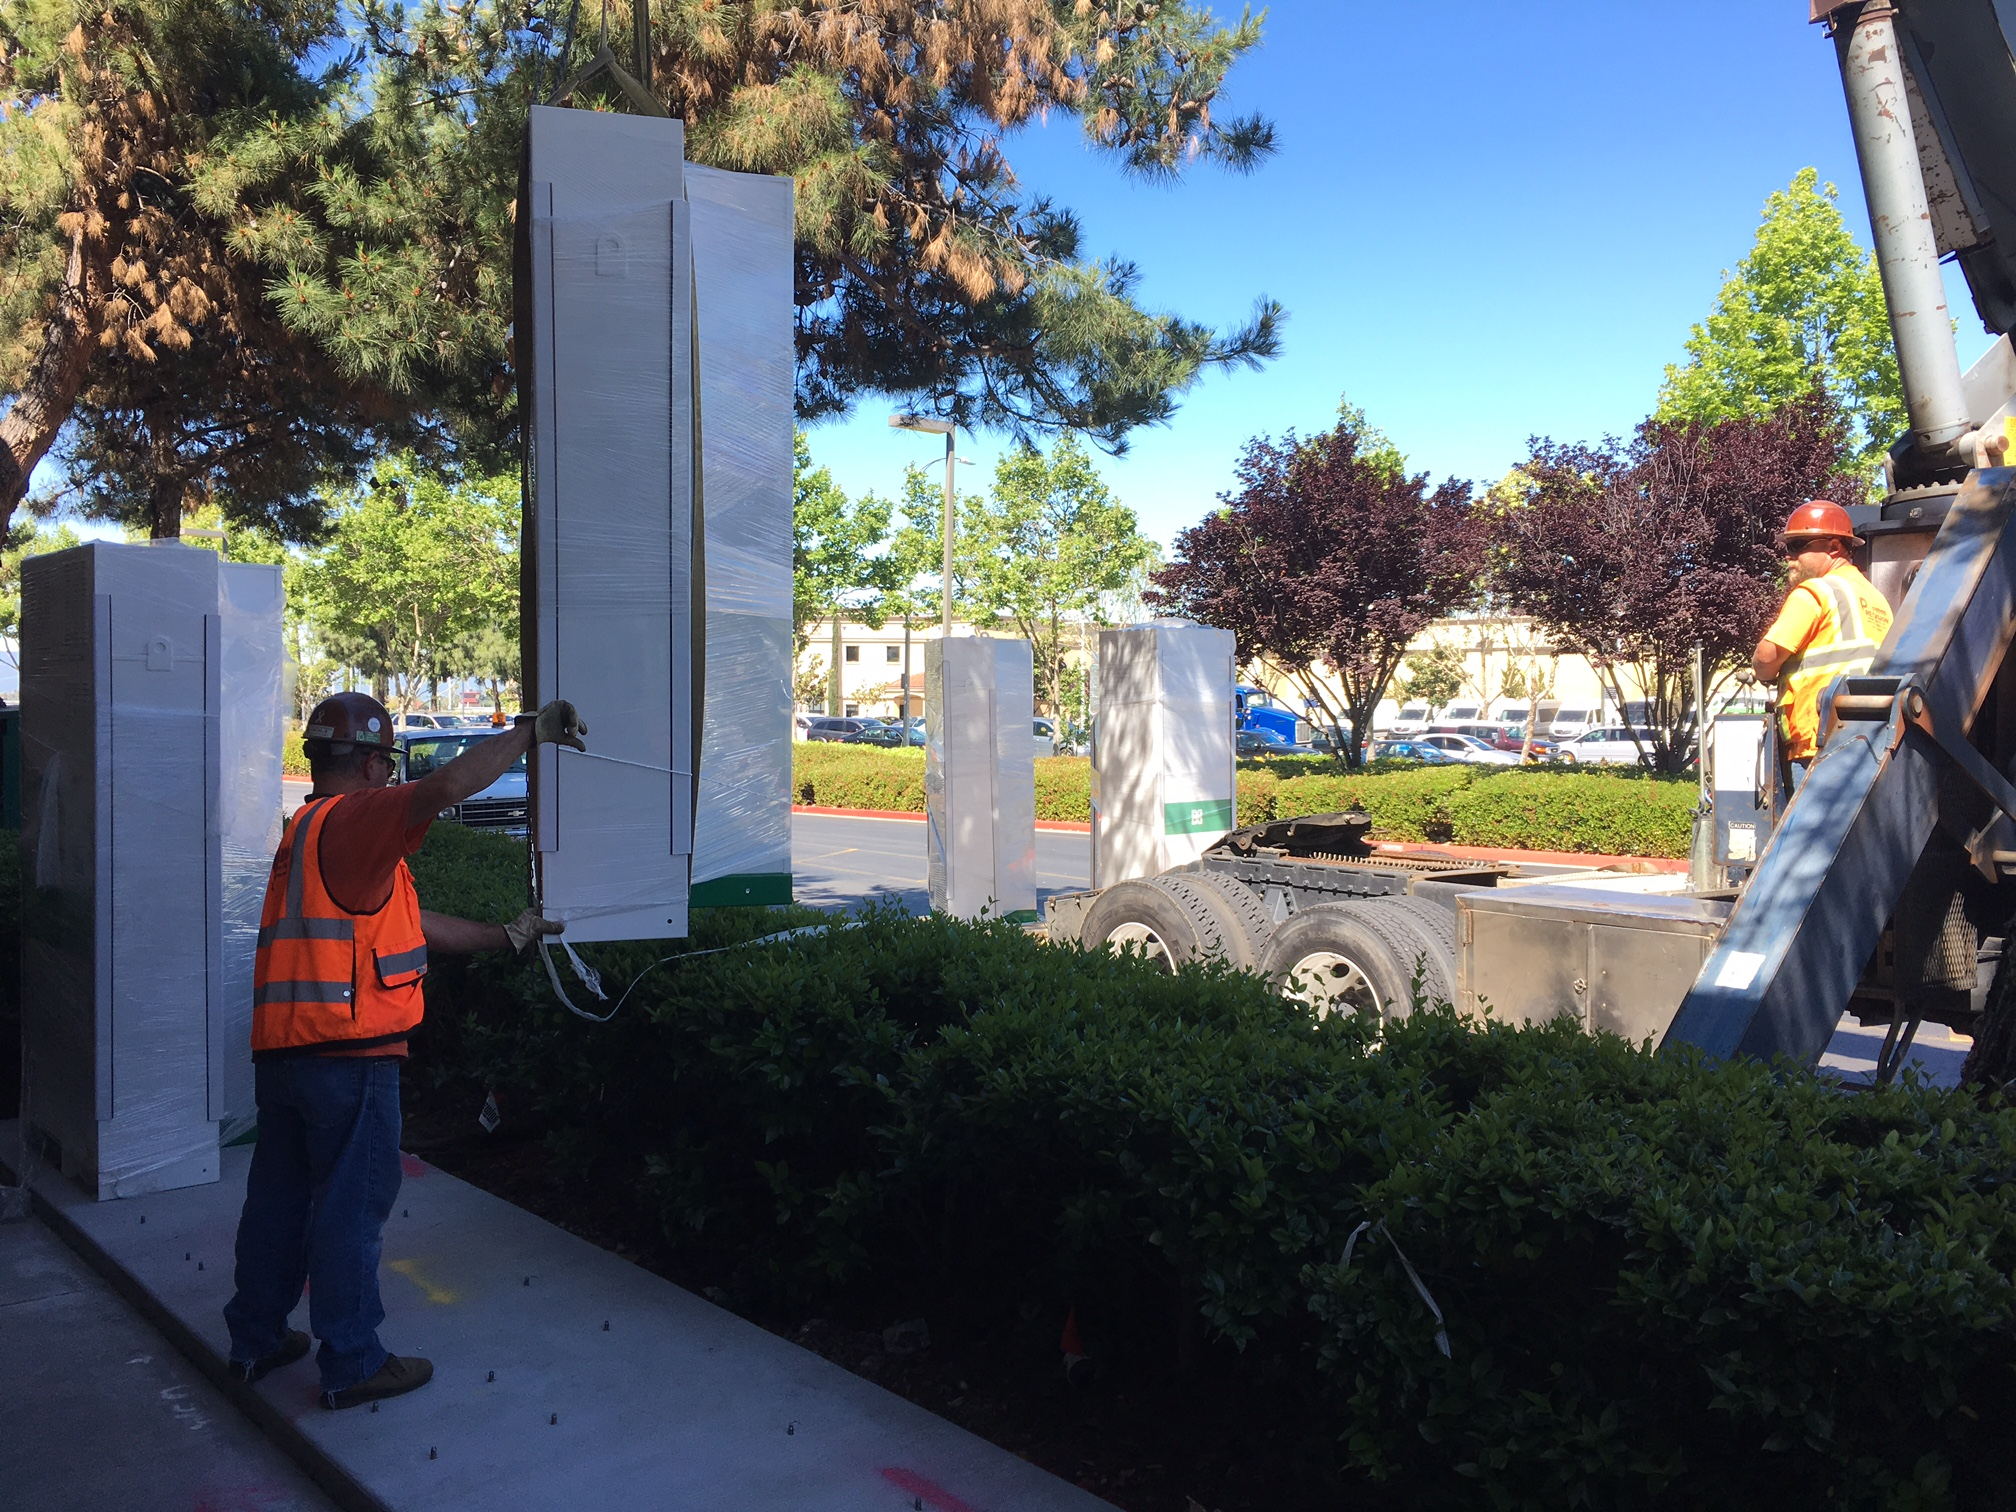 Battery systems from Green Charge are installed at a supermarket in San Jose. The installation is a part of PG&E's technology demonstration to test battery storage and rooftop solar connected to smart inverters that will support the electric grid during periods of high electric demand while providing participating customers with backup power and bill reduction.